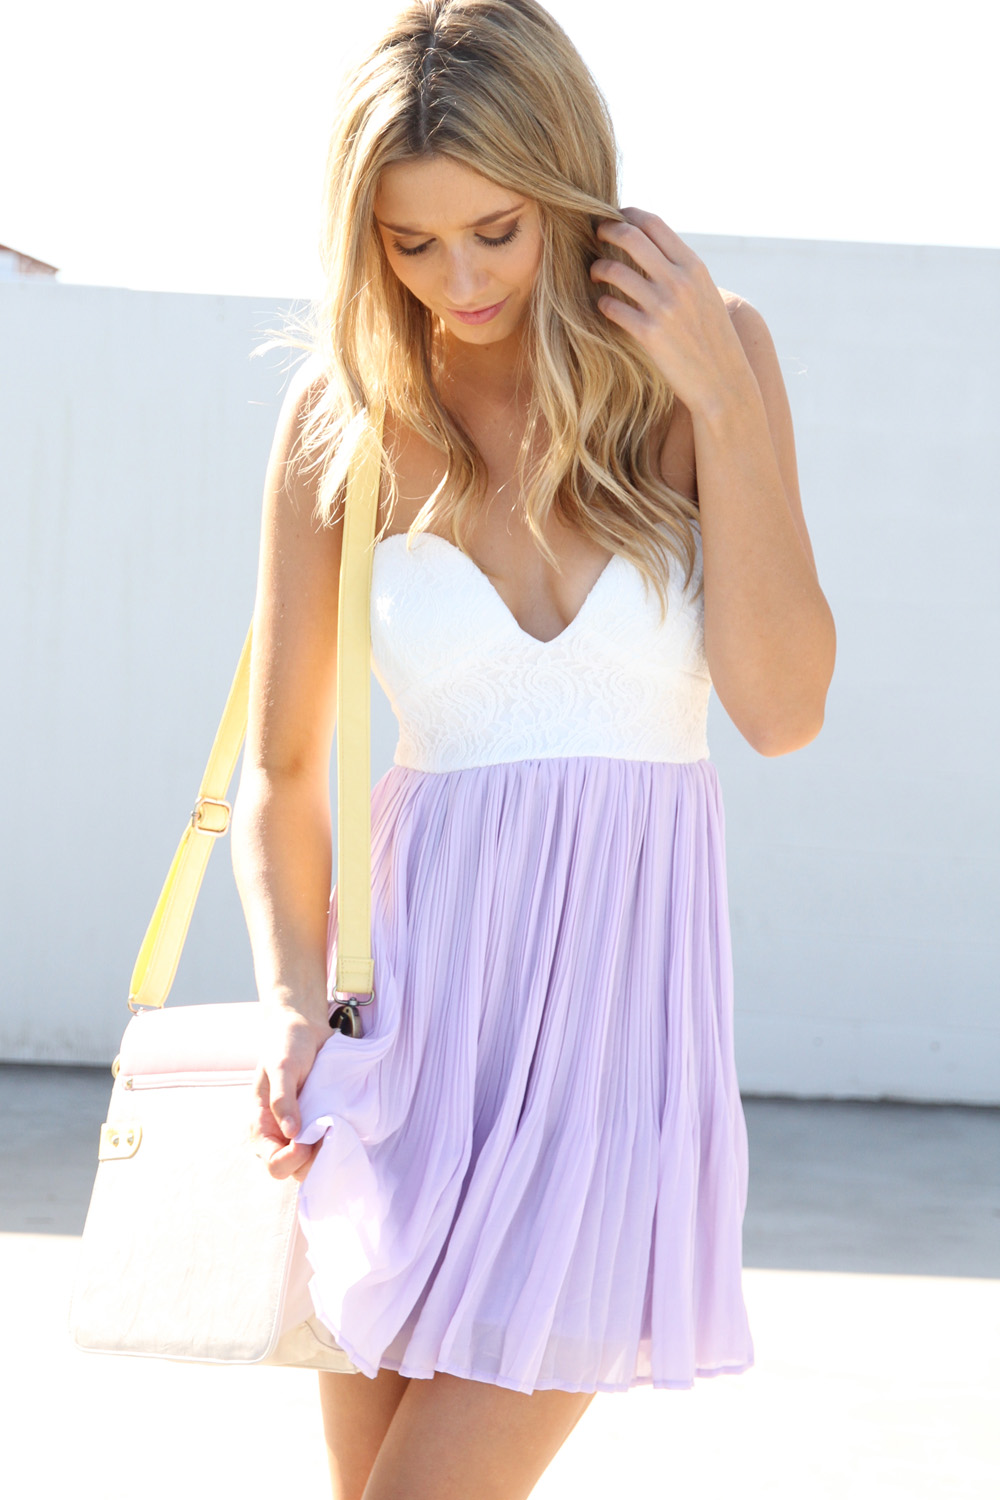 SABO SKIRT  Lavender Tea Dress - (No Colour Specified) - 68.0000